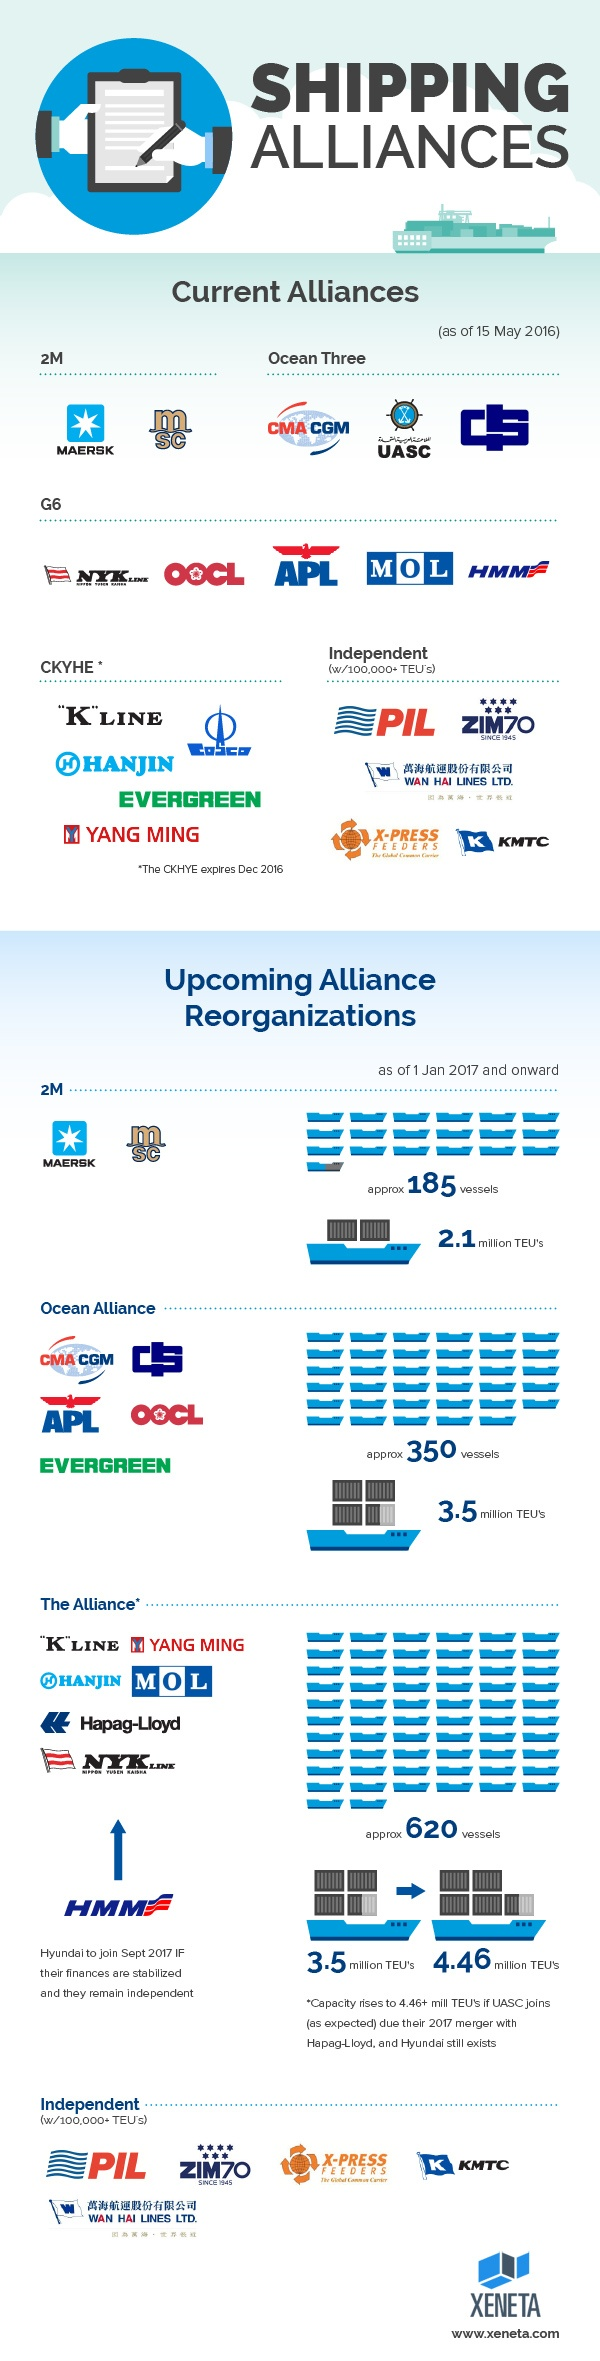 Shipping Alliances Overview